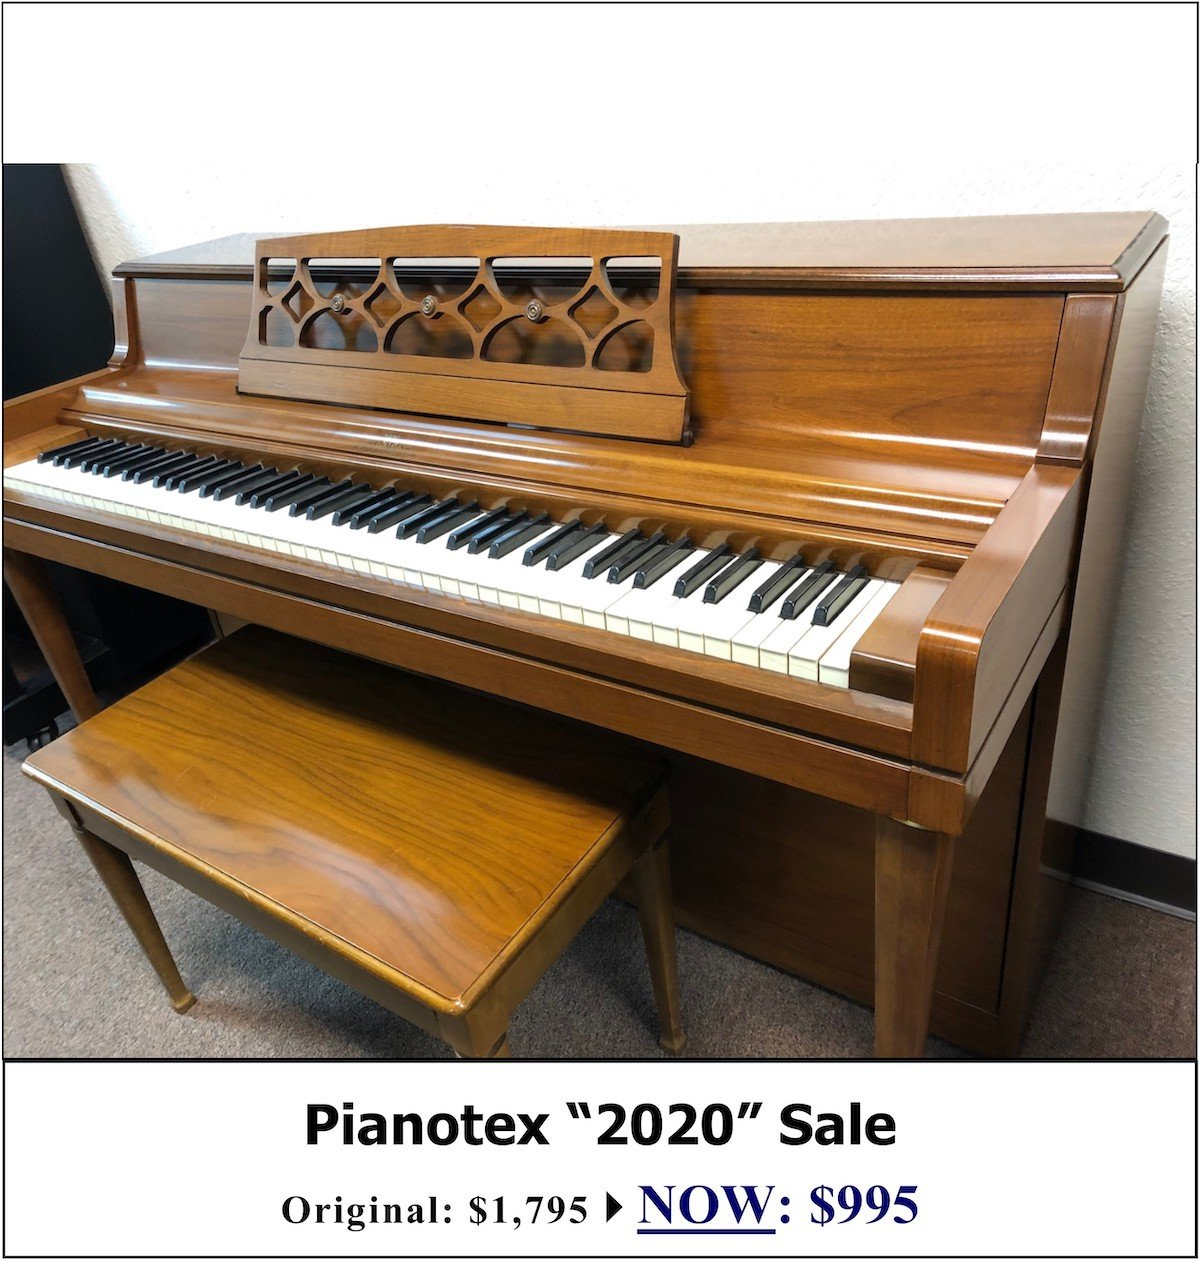 1966 Wurlitzer Spinet Upright Piano for sale